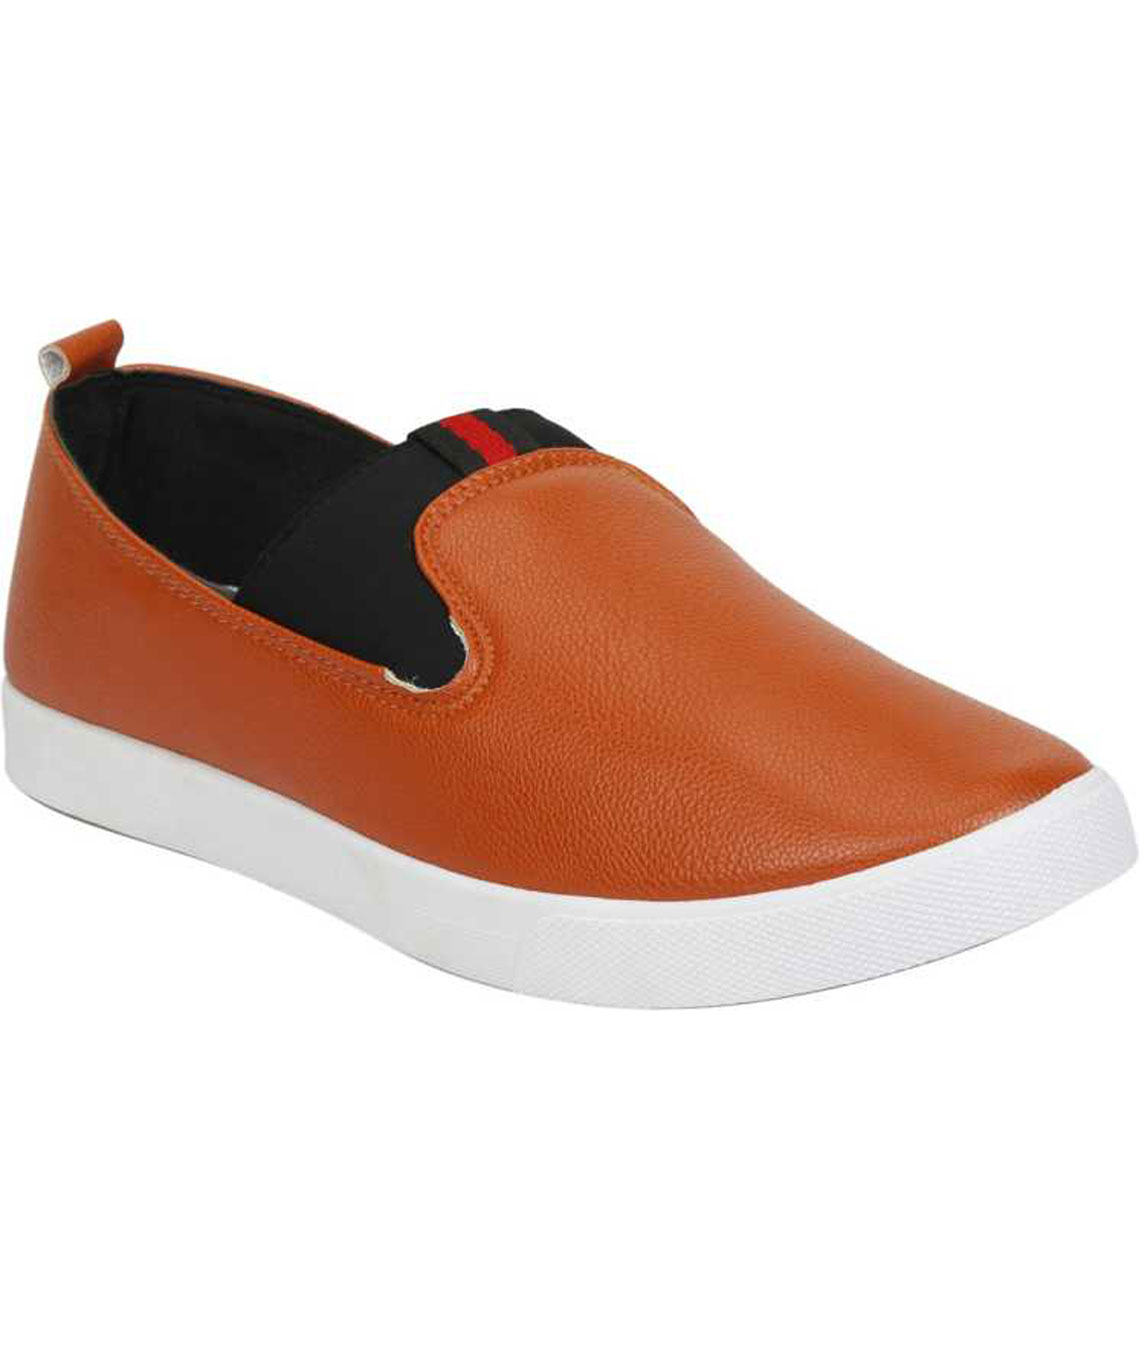 VOSTRO-XAVIER CASUAL SHOES OR SNEAKERS FOR MEN/BOYS